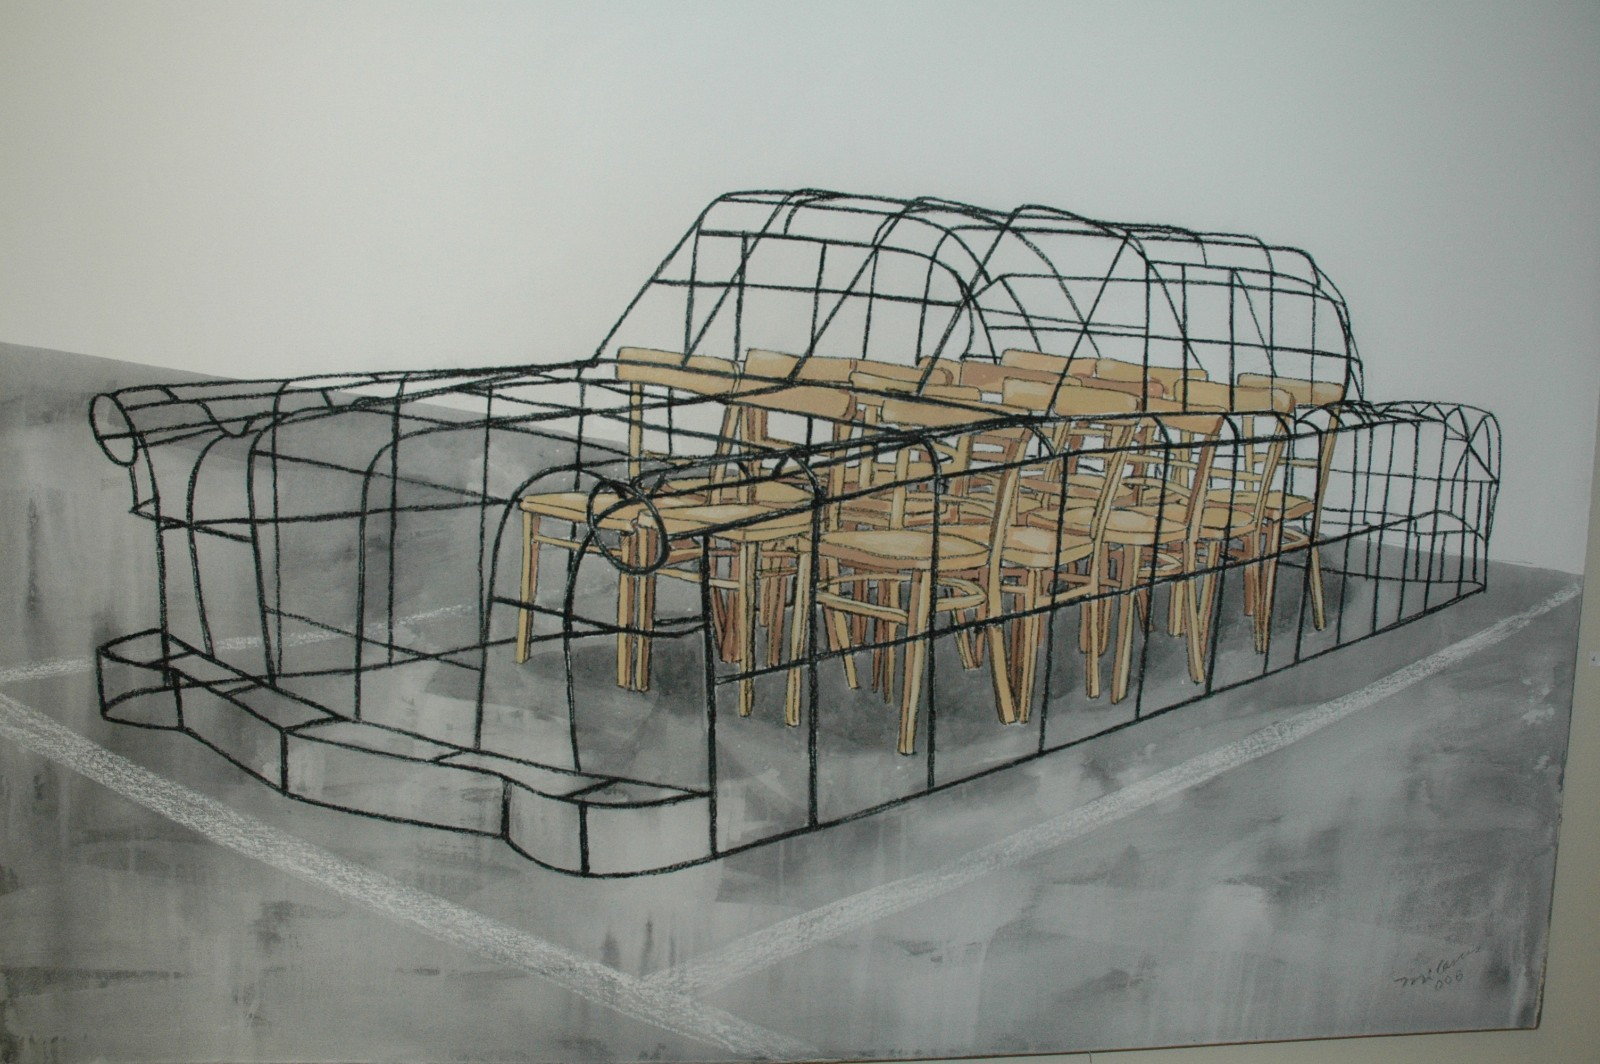 Reserved space, 2006, charcoal and acrylic on canvas, 160 x 200 cm